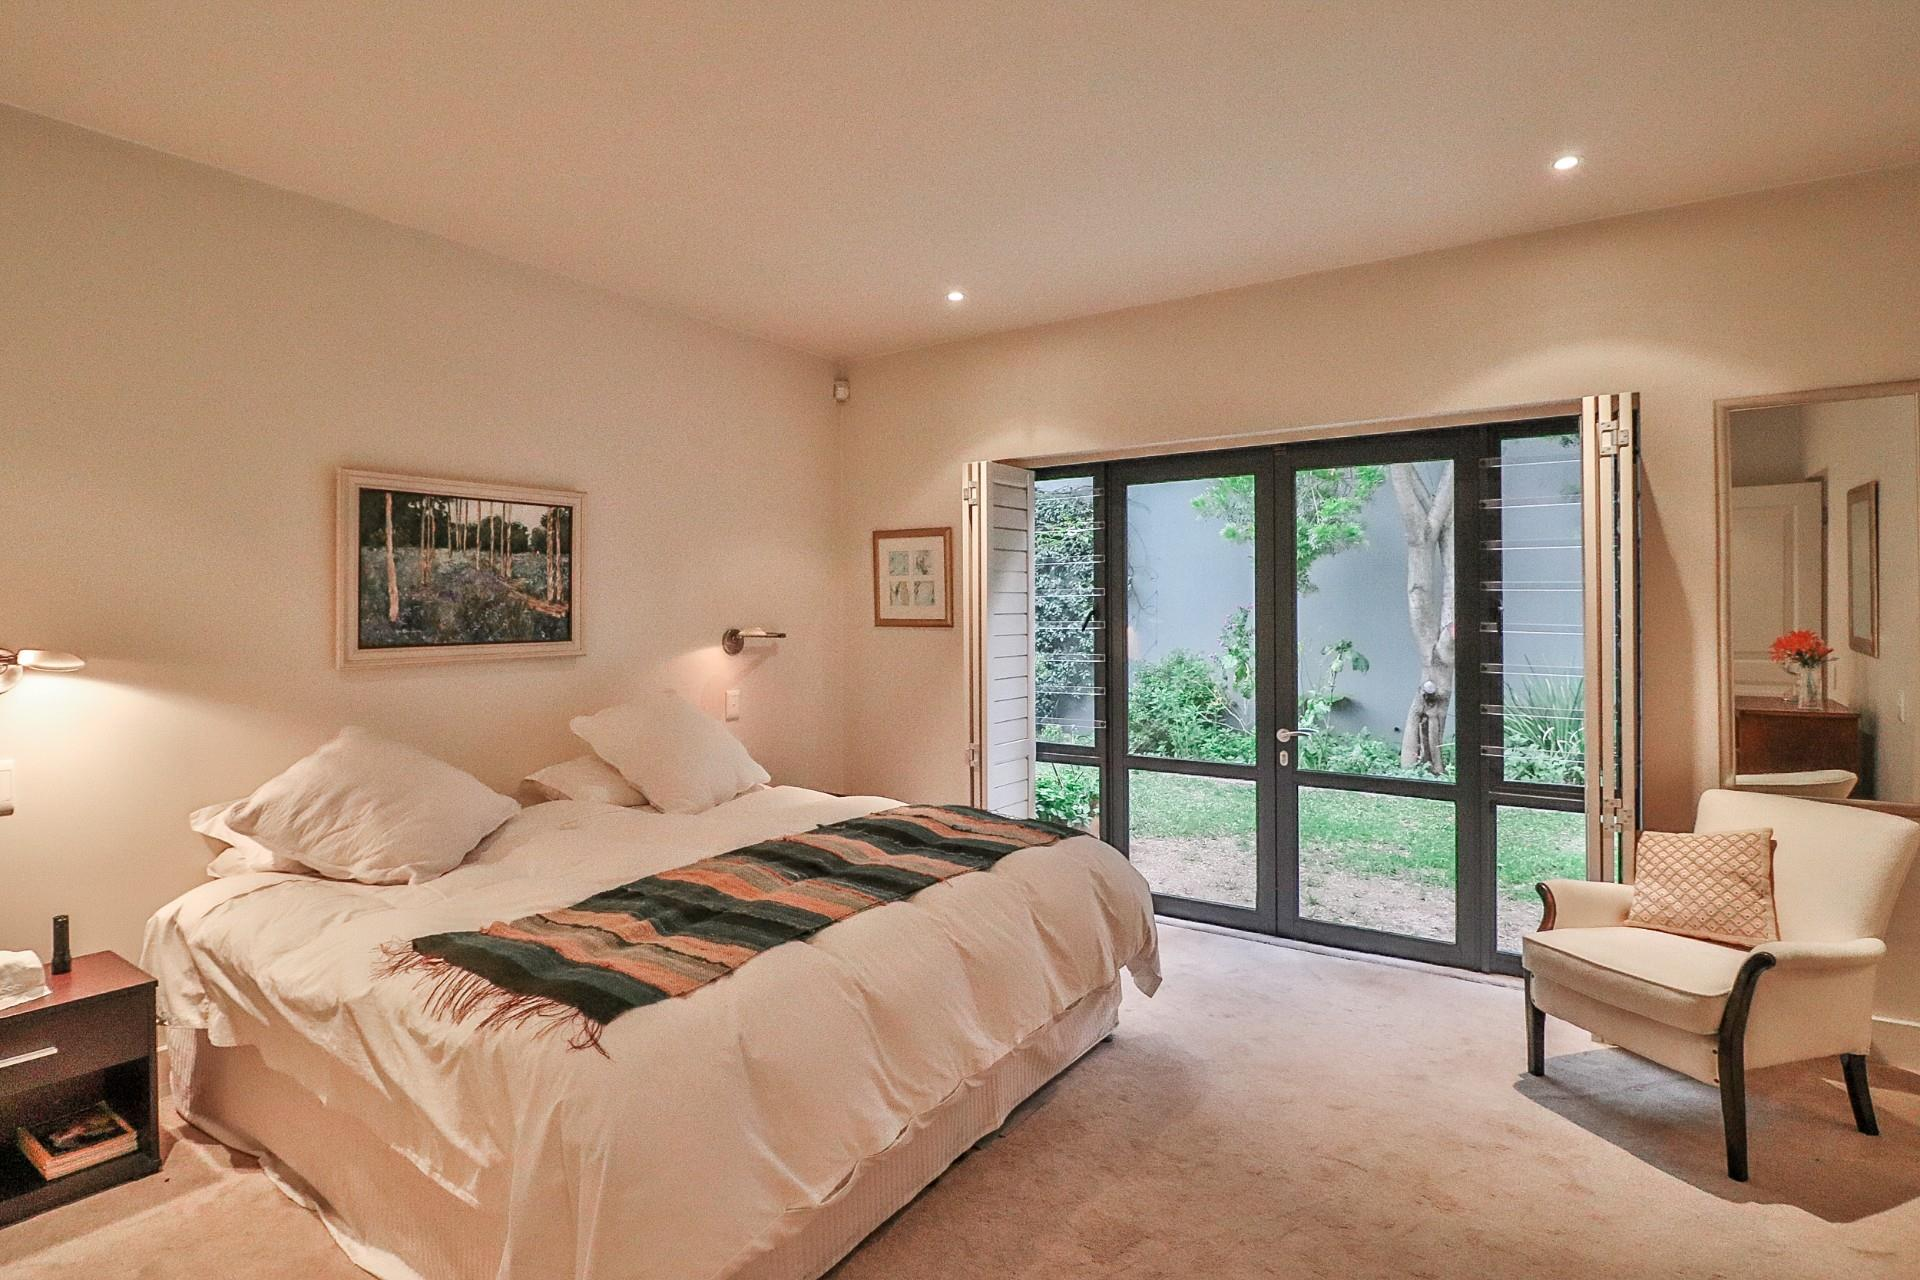 3 Bedroom House For Sale in Craighall